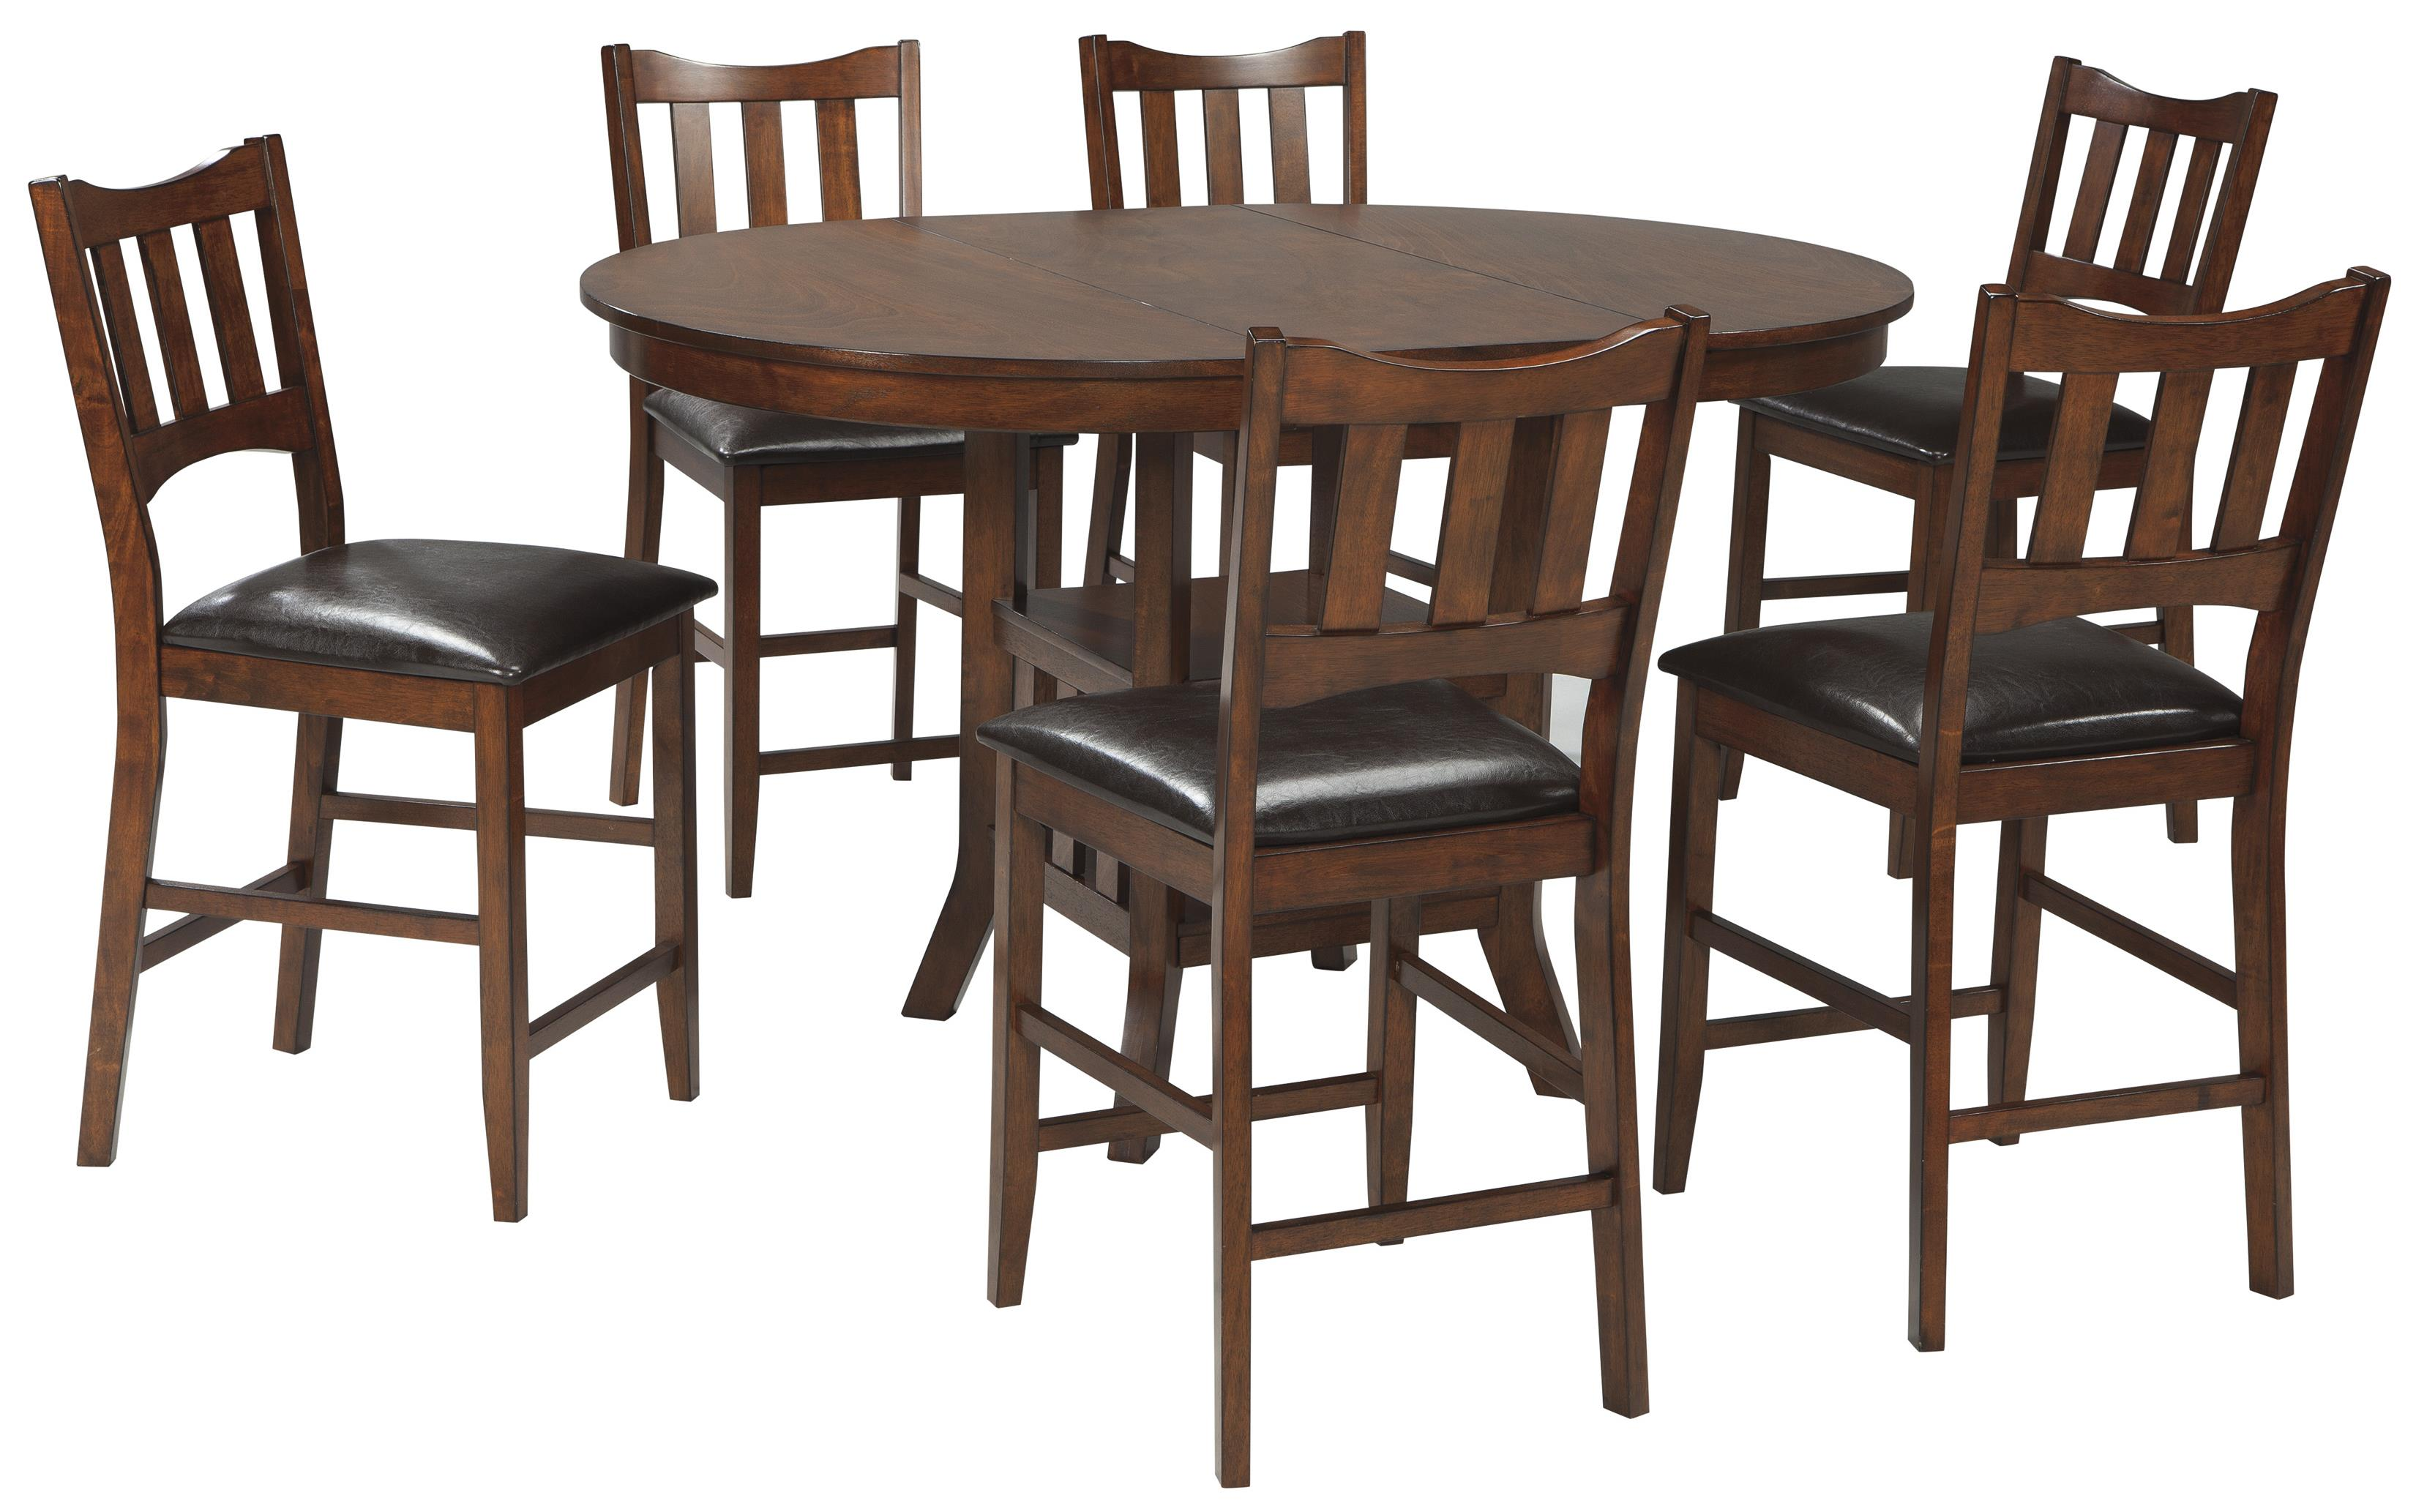 Signature Design by Ashley Renaburg 7-Piece Oval Counter Extension Table Set - Item Number: D574-42+6x124